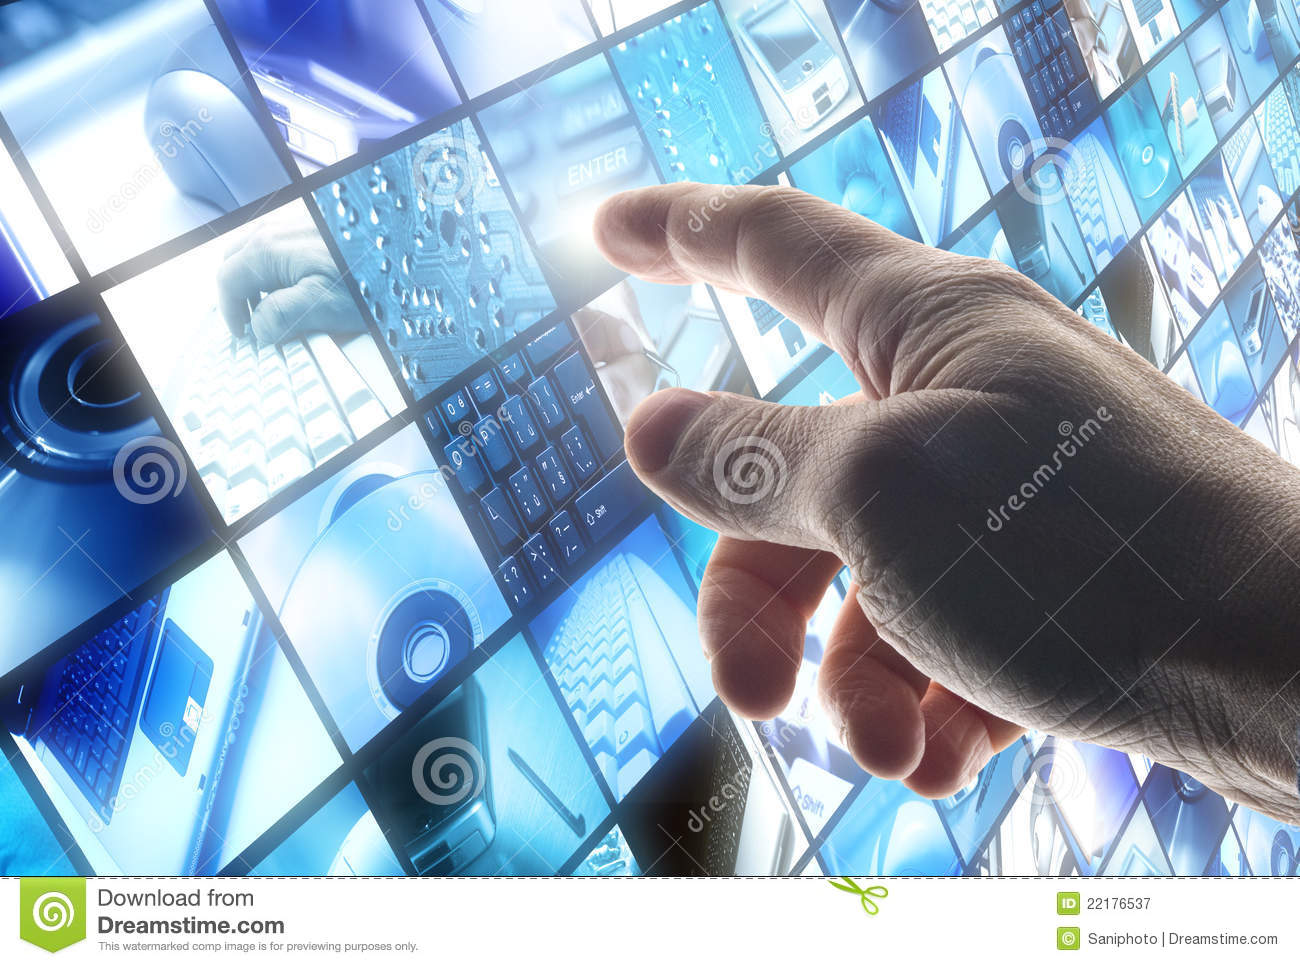 technology royalty touching hand business dreamstime